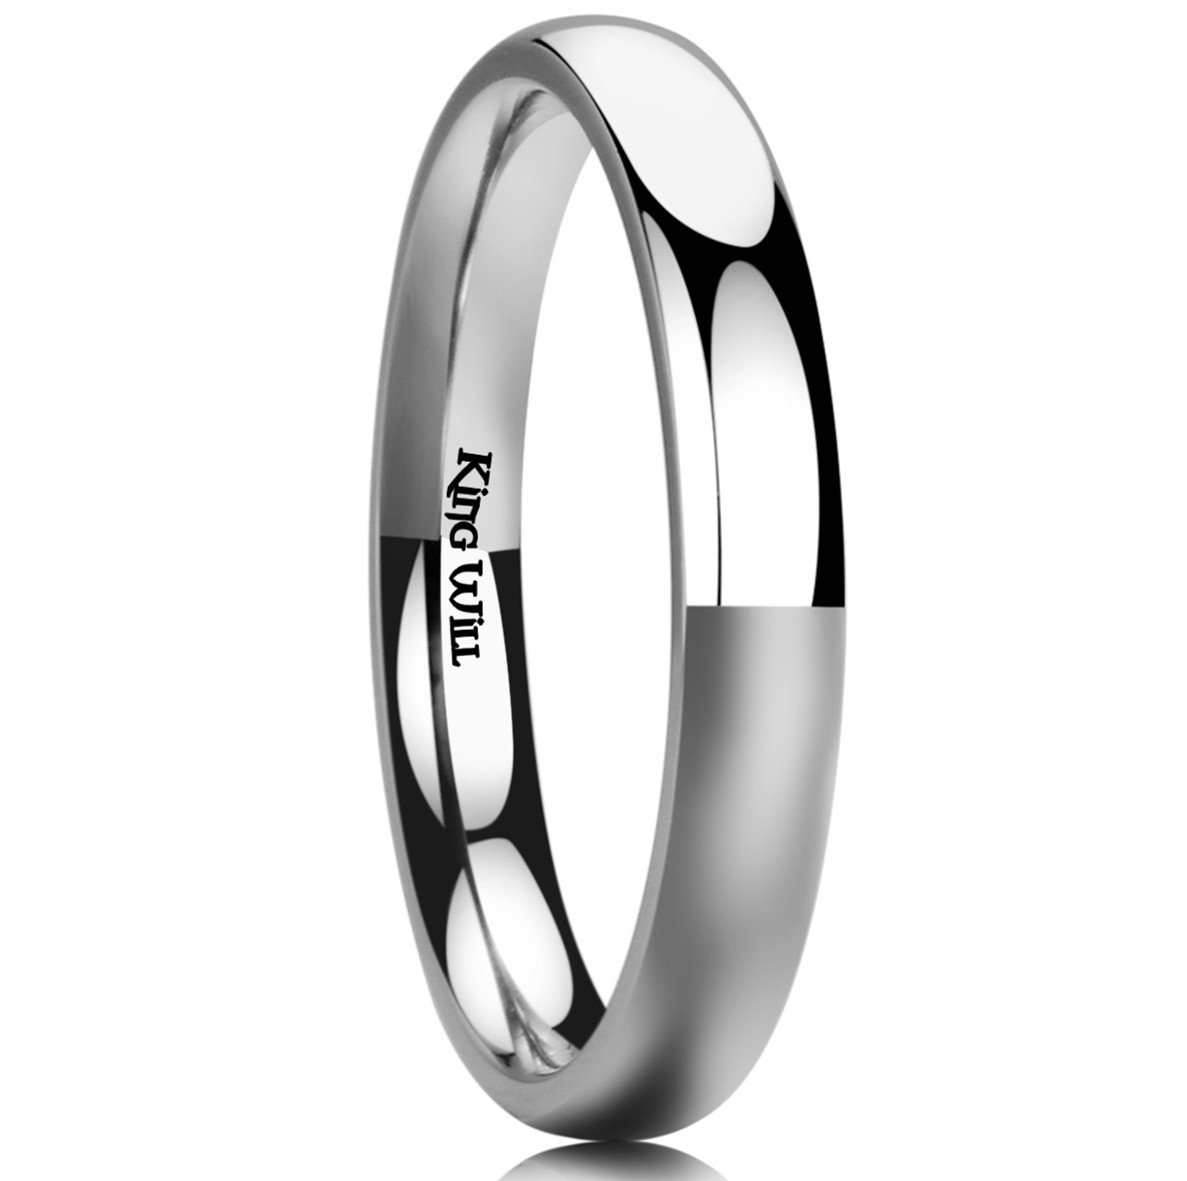 King Will BASIC 3MM Titanium Ring Domed High Polished Comfort Fit Wedding Engagement Band For Men Women 6.5